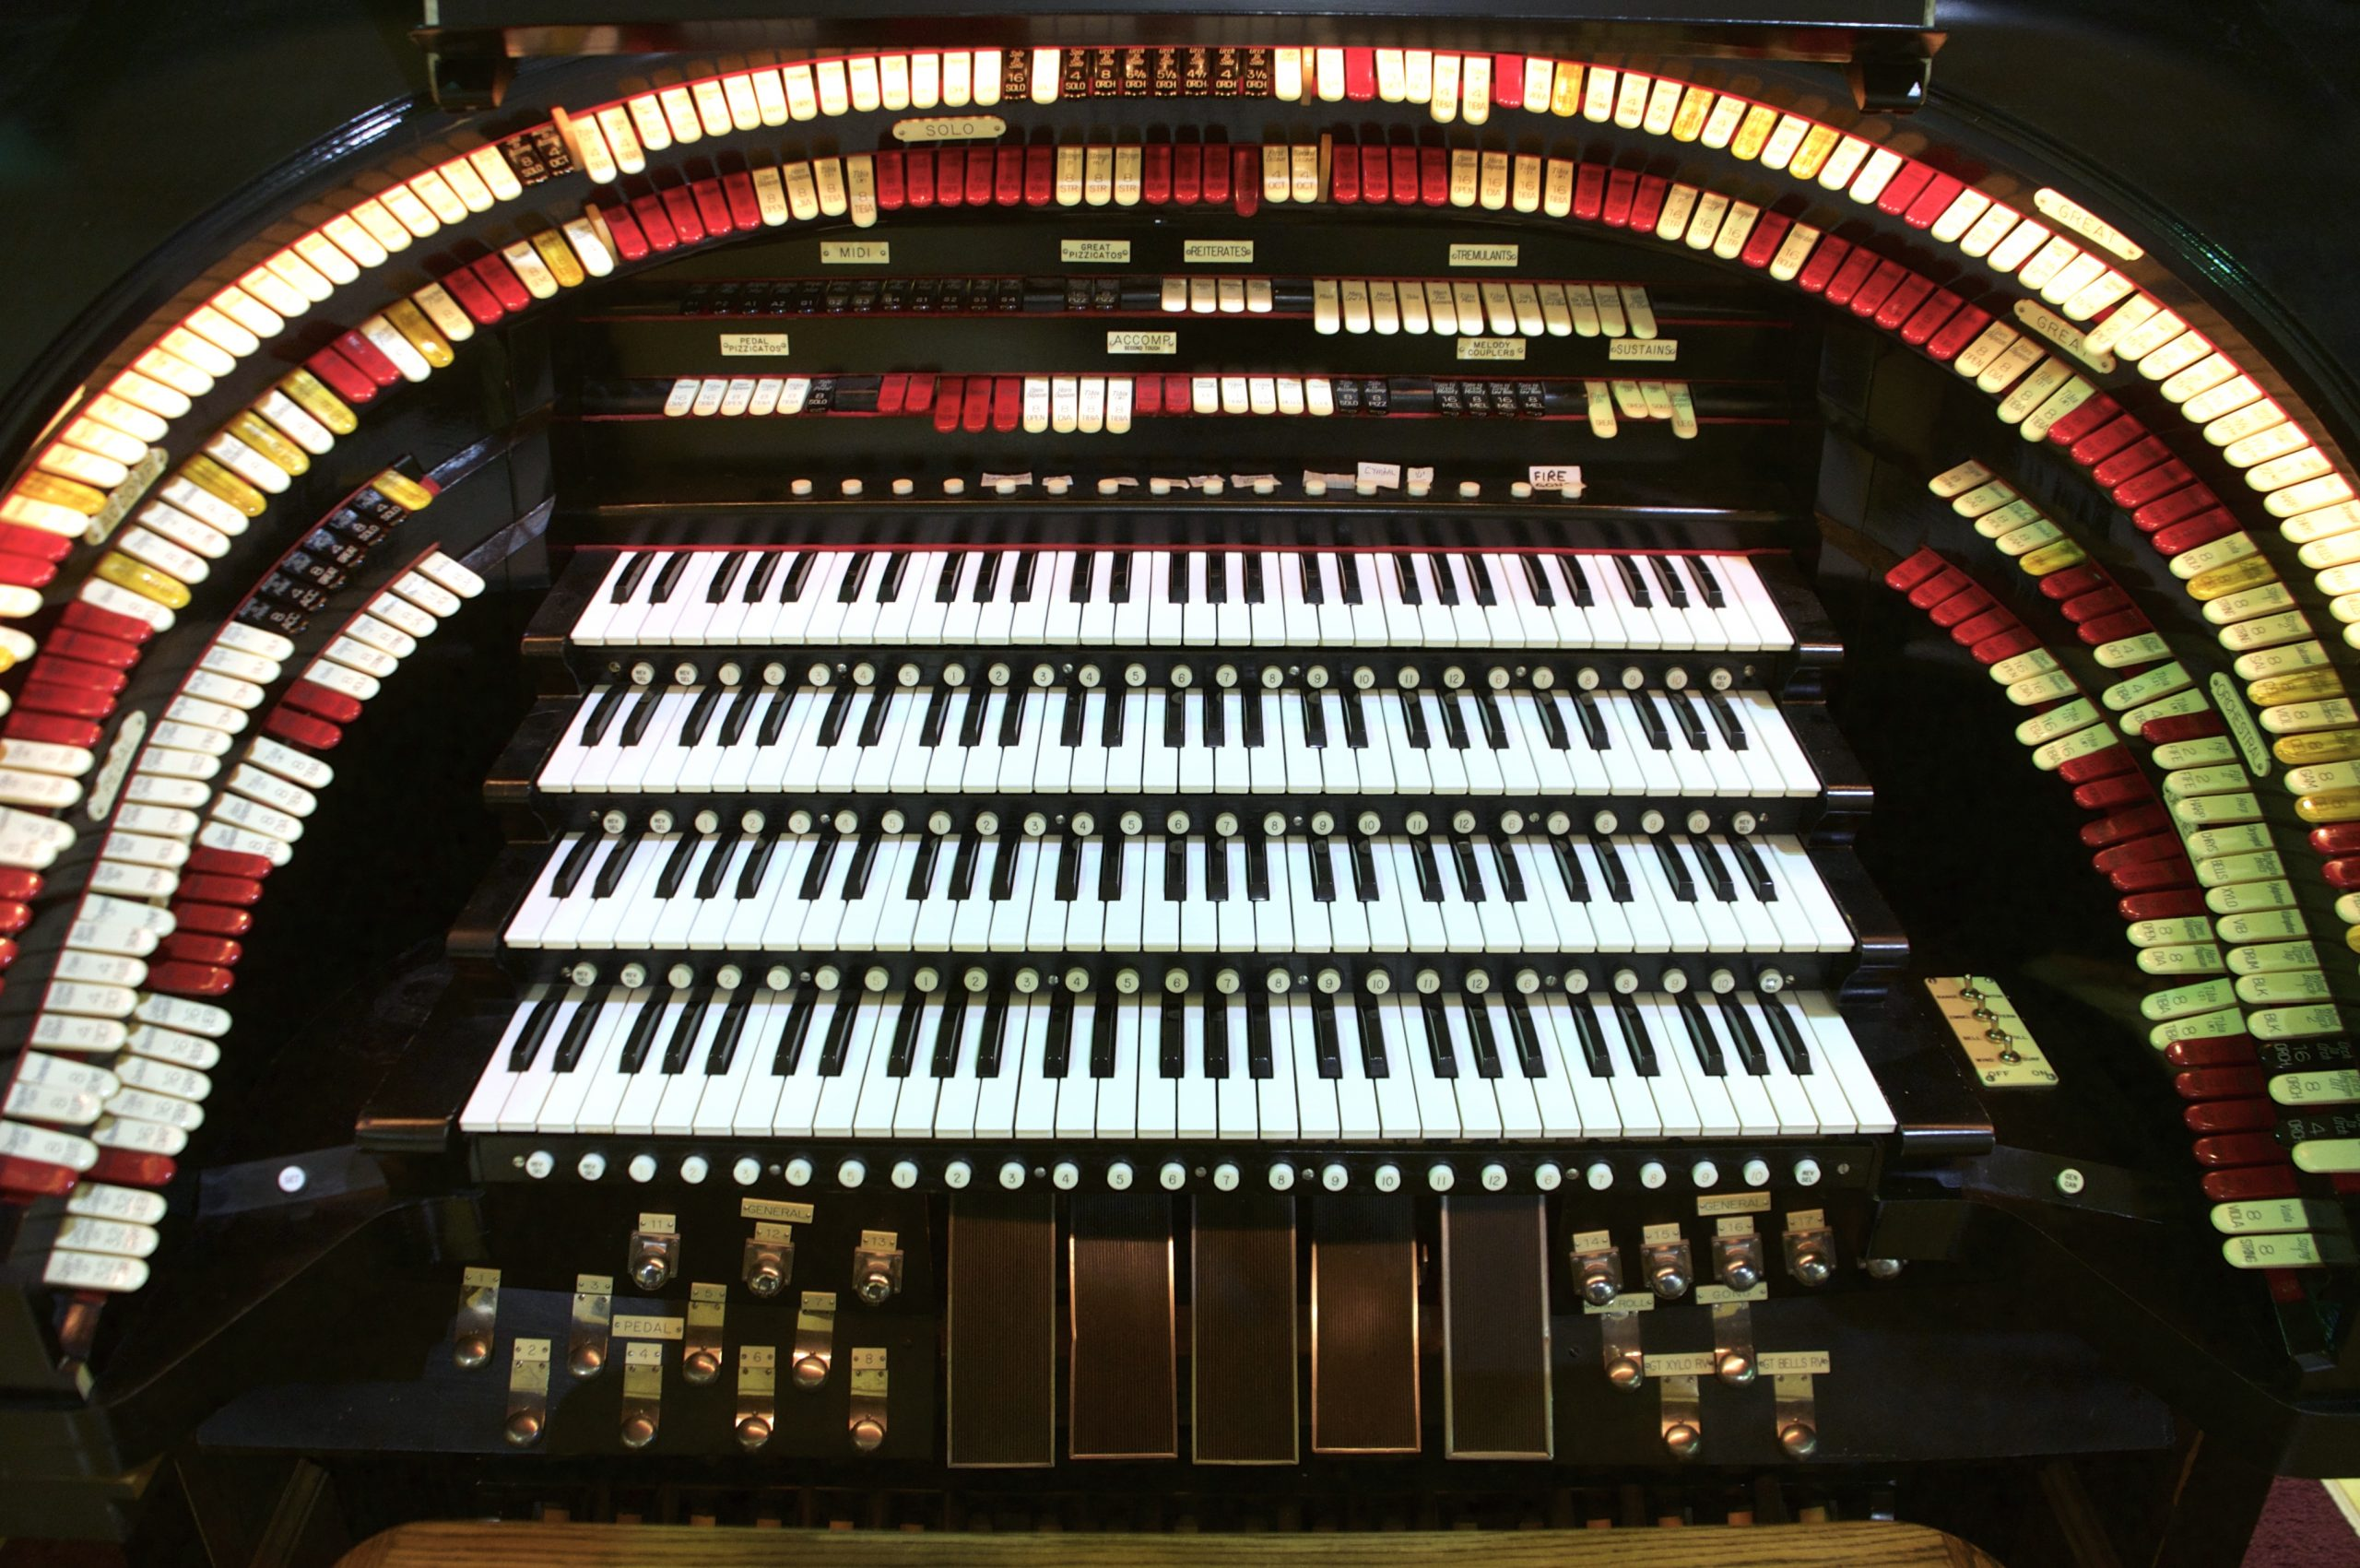 The organ console of the Mighty Kremer Wonder Organ.